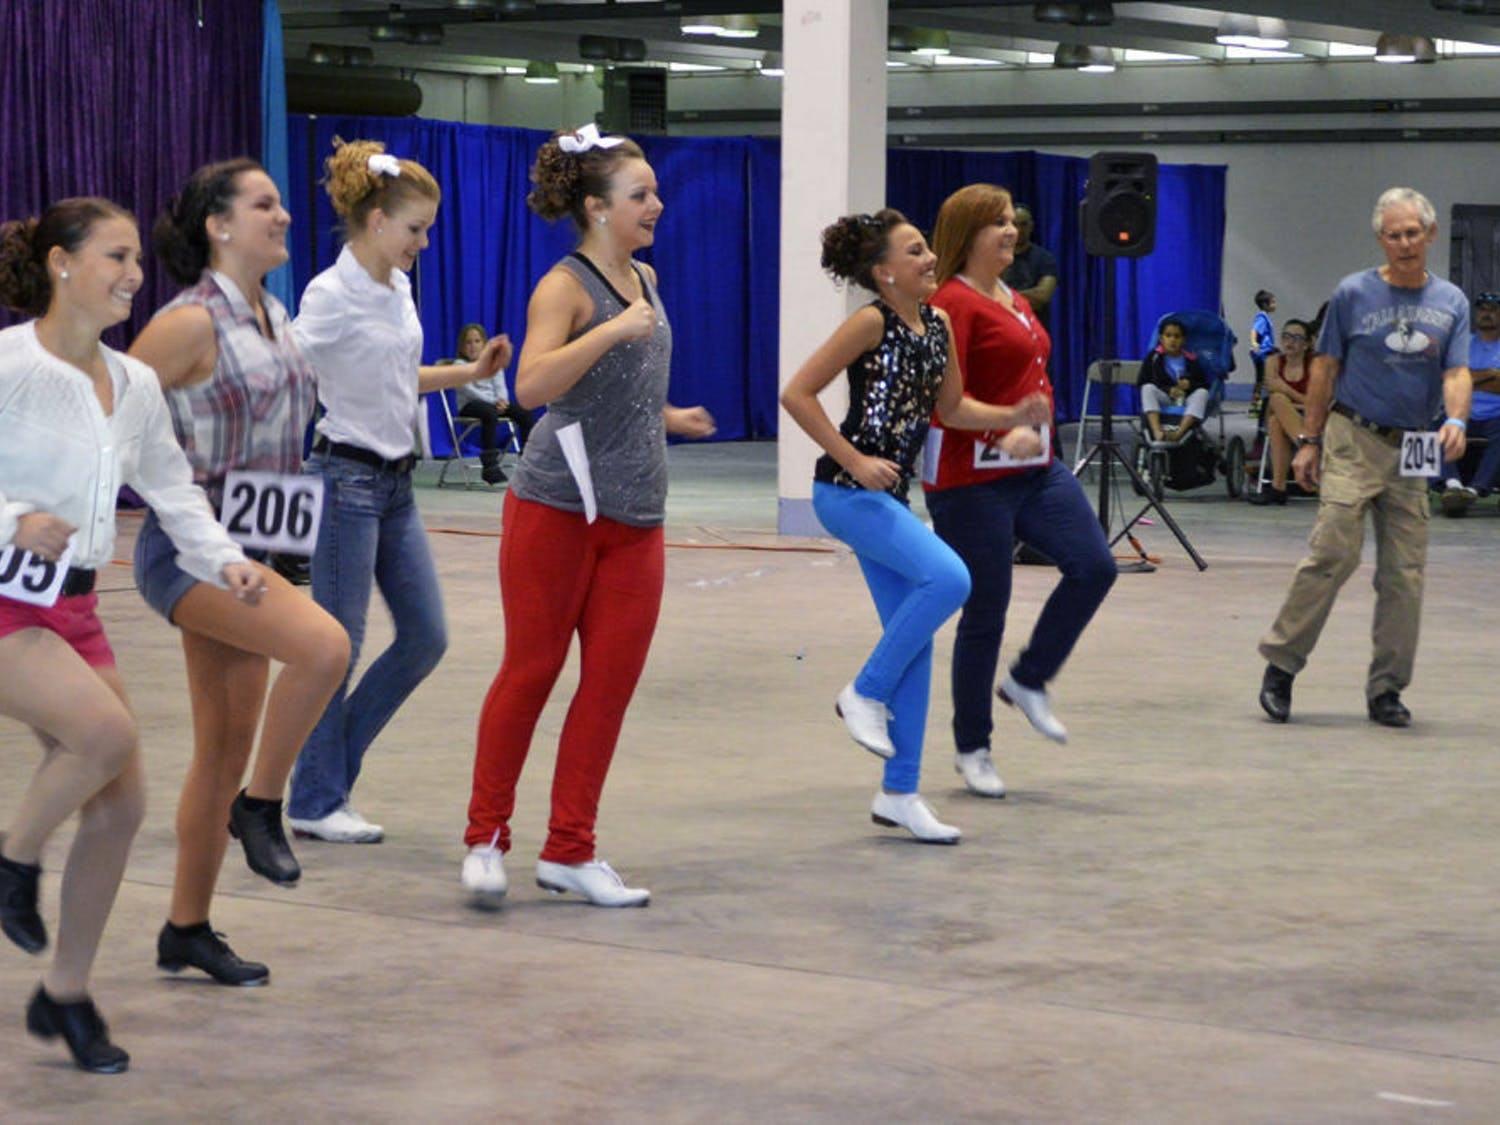 A group of clog dancers performs at Gainesville's first clogging festival, which was on the Alachua County Fairgrounds on Saturday. Eight teams competed in the Florida Clogging Festival and will advance to two national competitions.